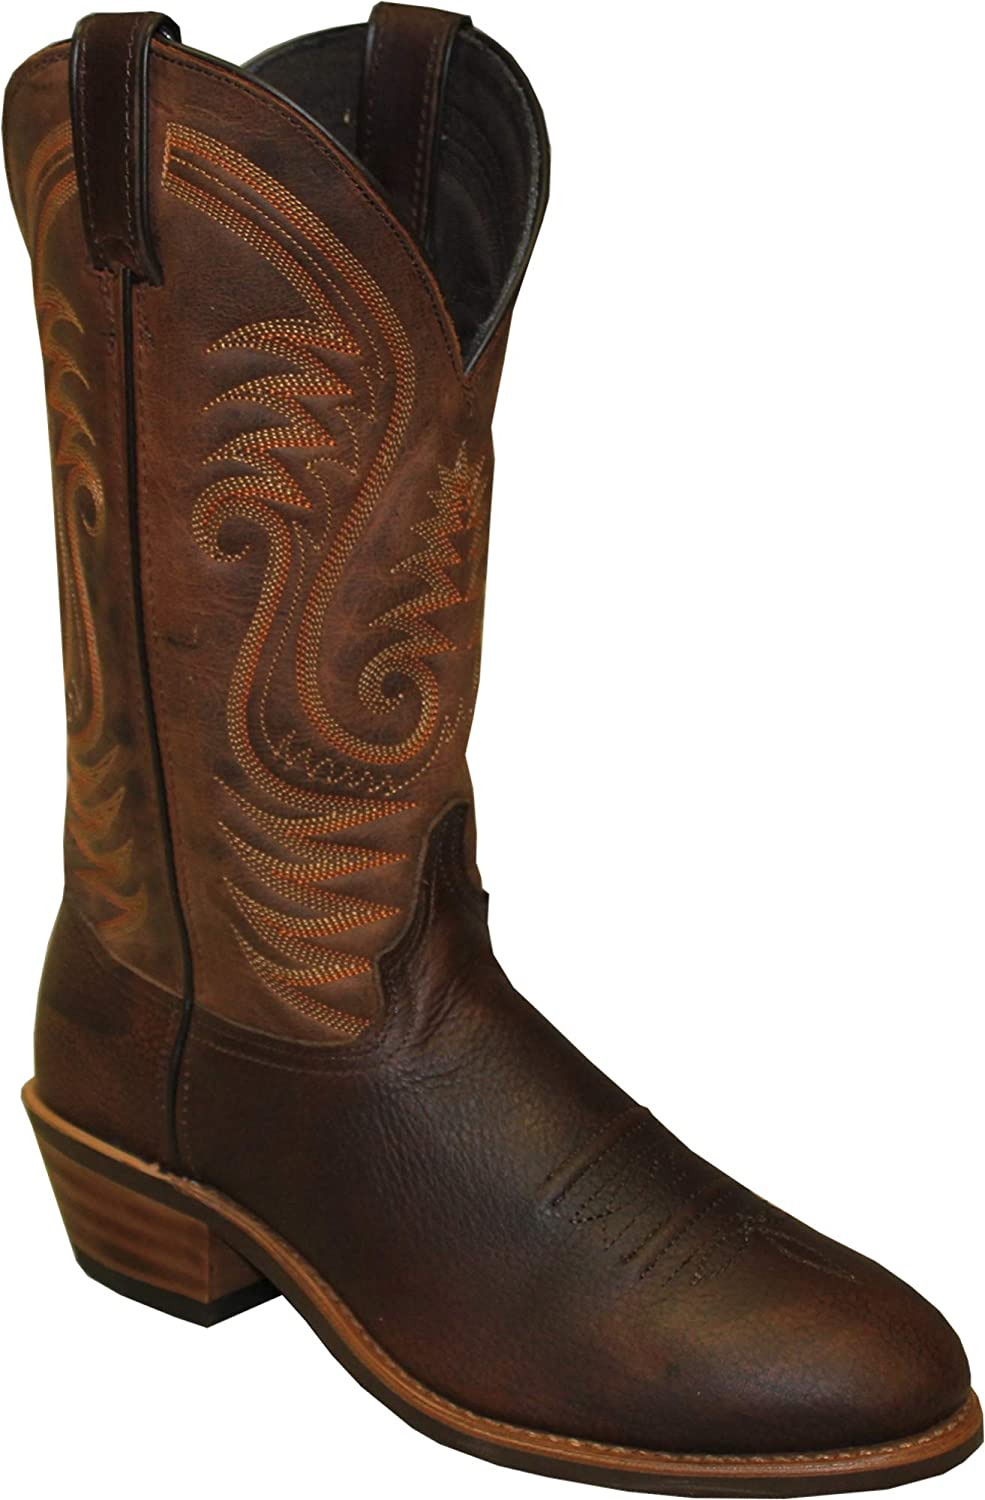 2021 new Abilene Mens Brown Leather Max 79% OFF 12in Cowboy Boots Safety Toe